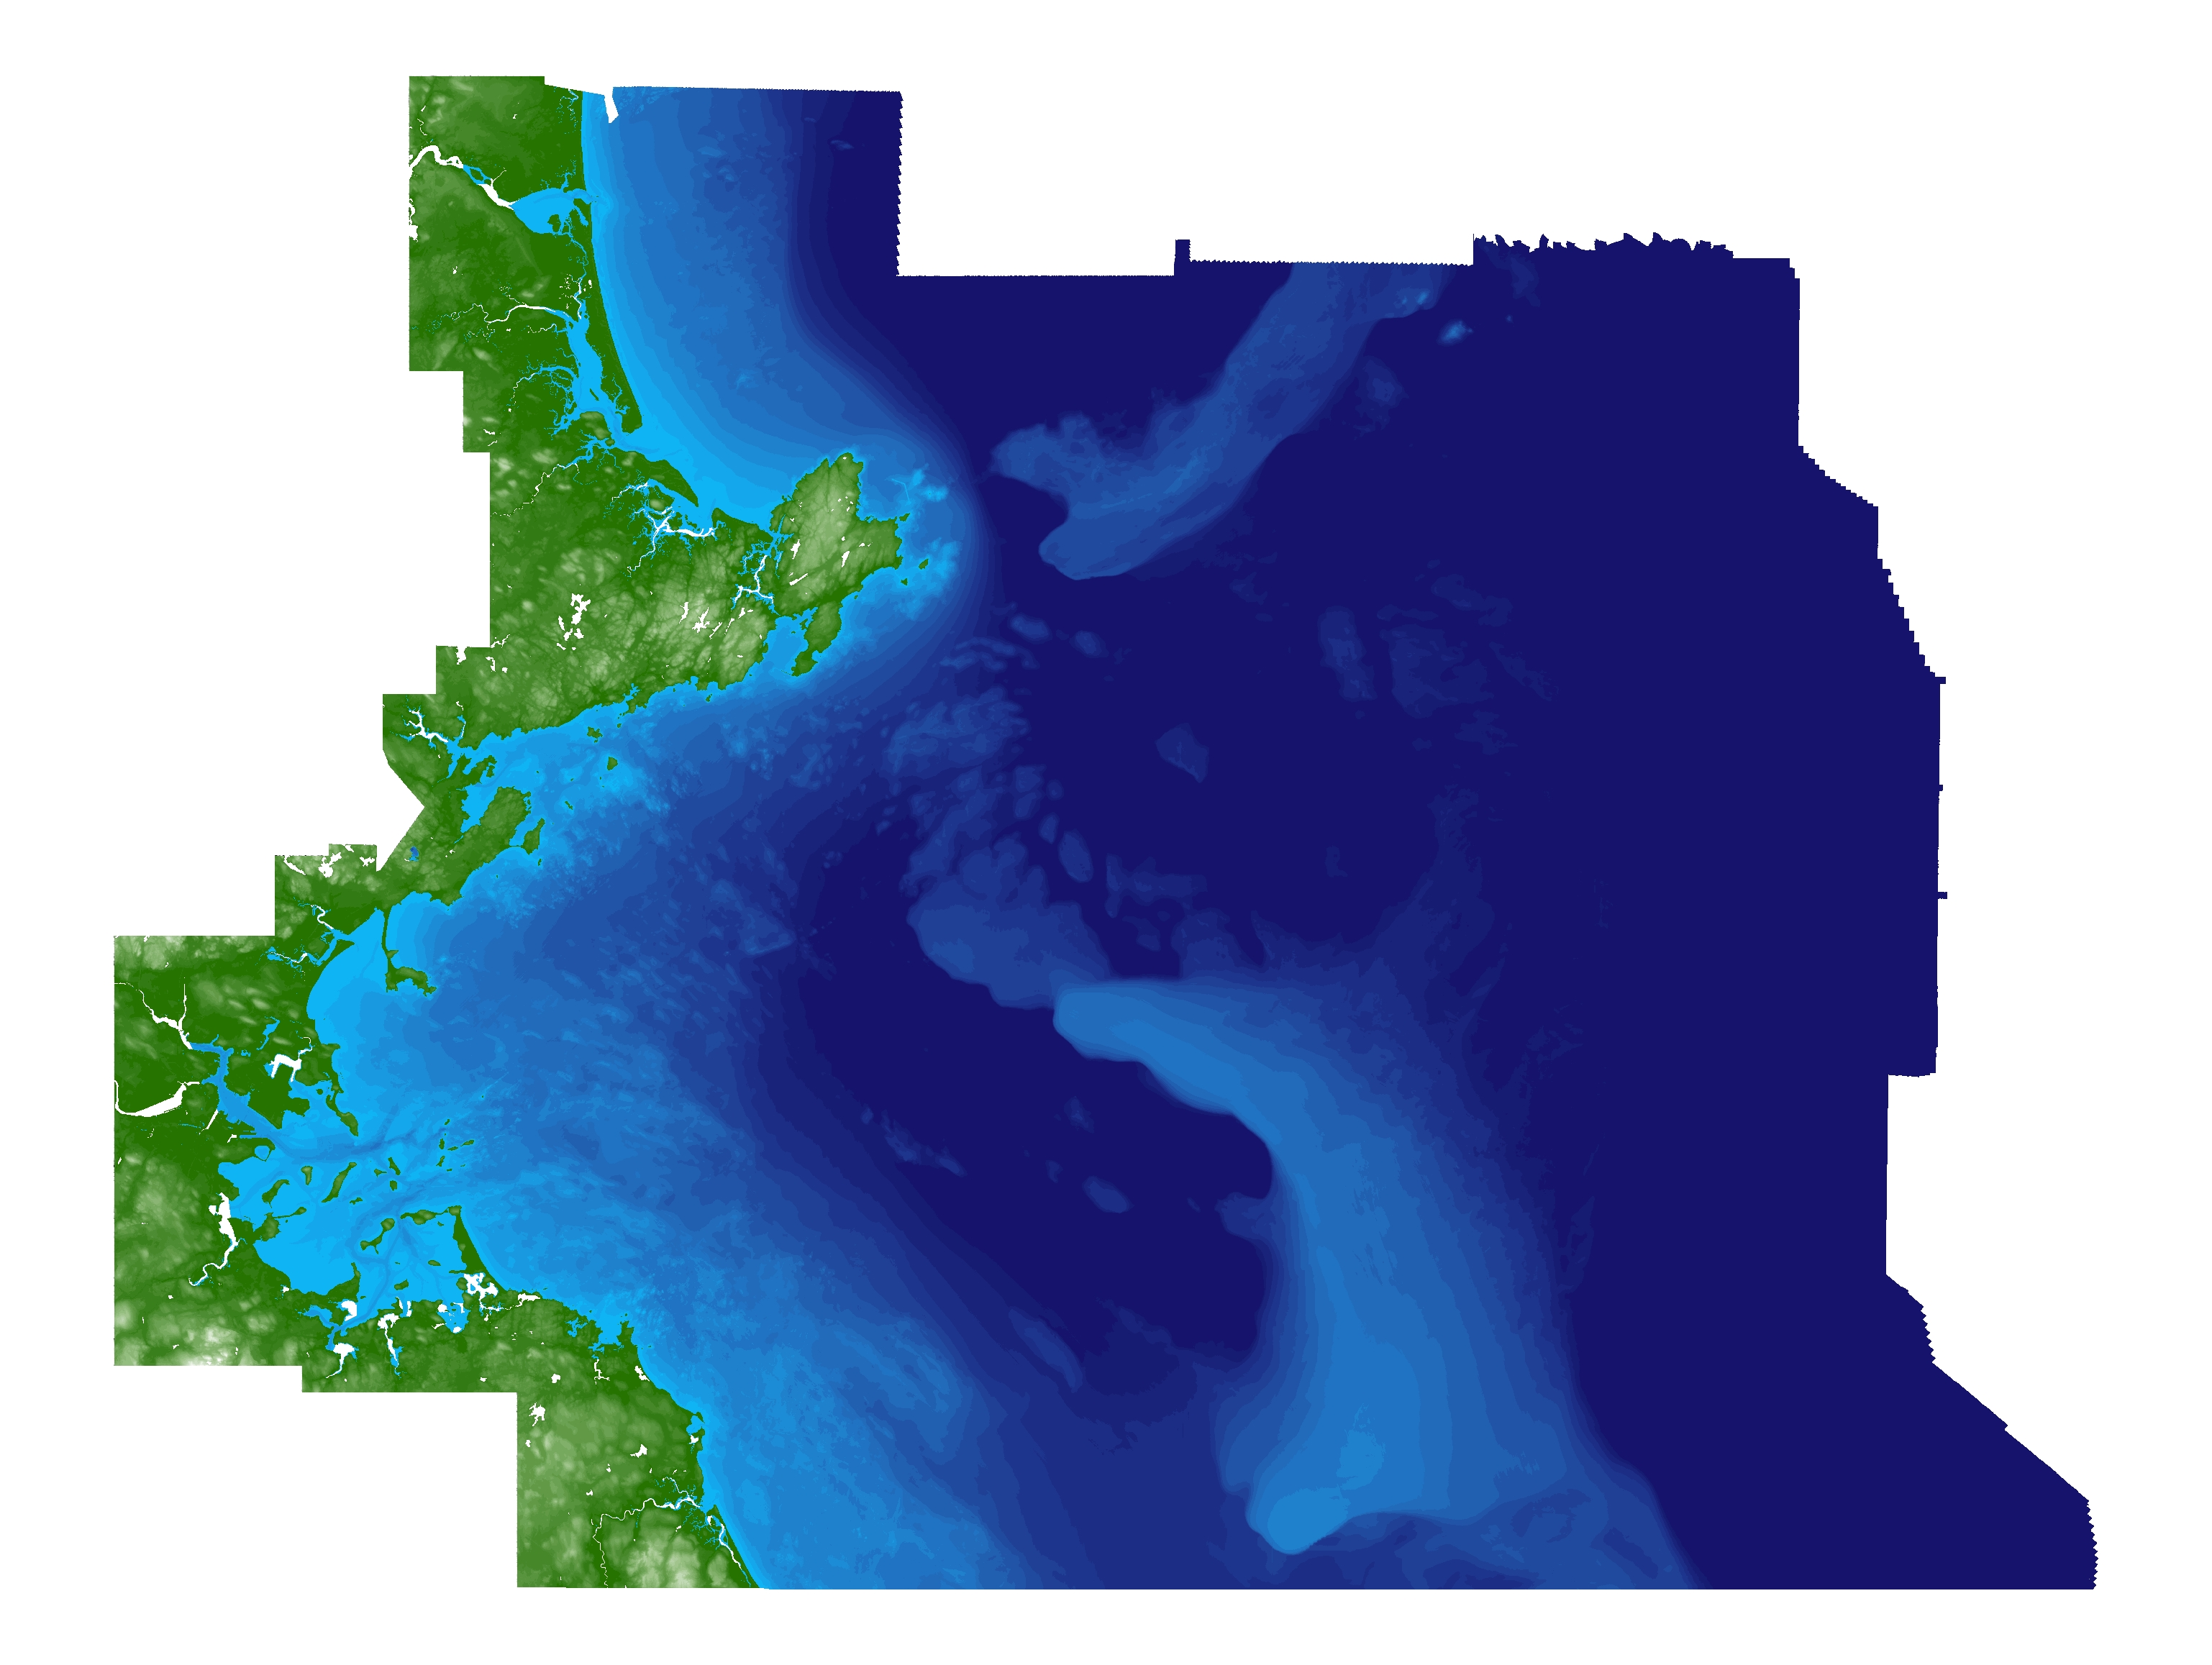 Preview image of ver. 2.0 of the terrain model of Massachusetts Bay, Massachusetts. File is located in the compressed zip file.